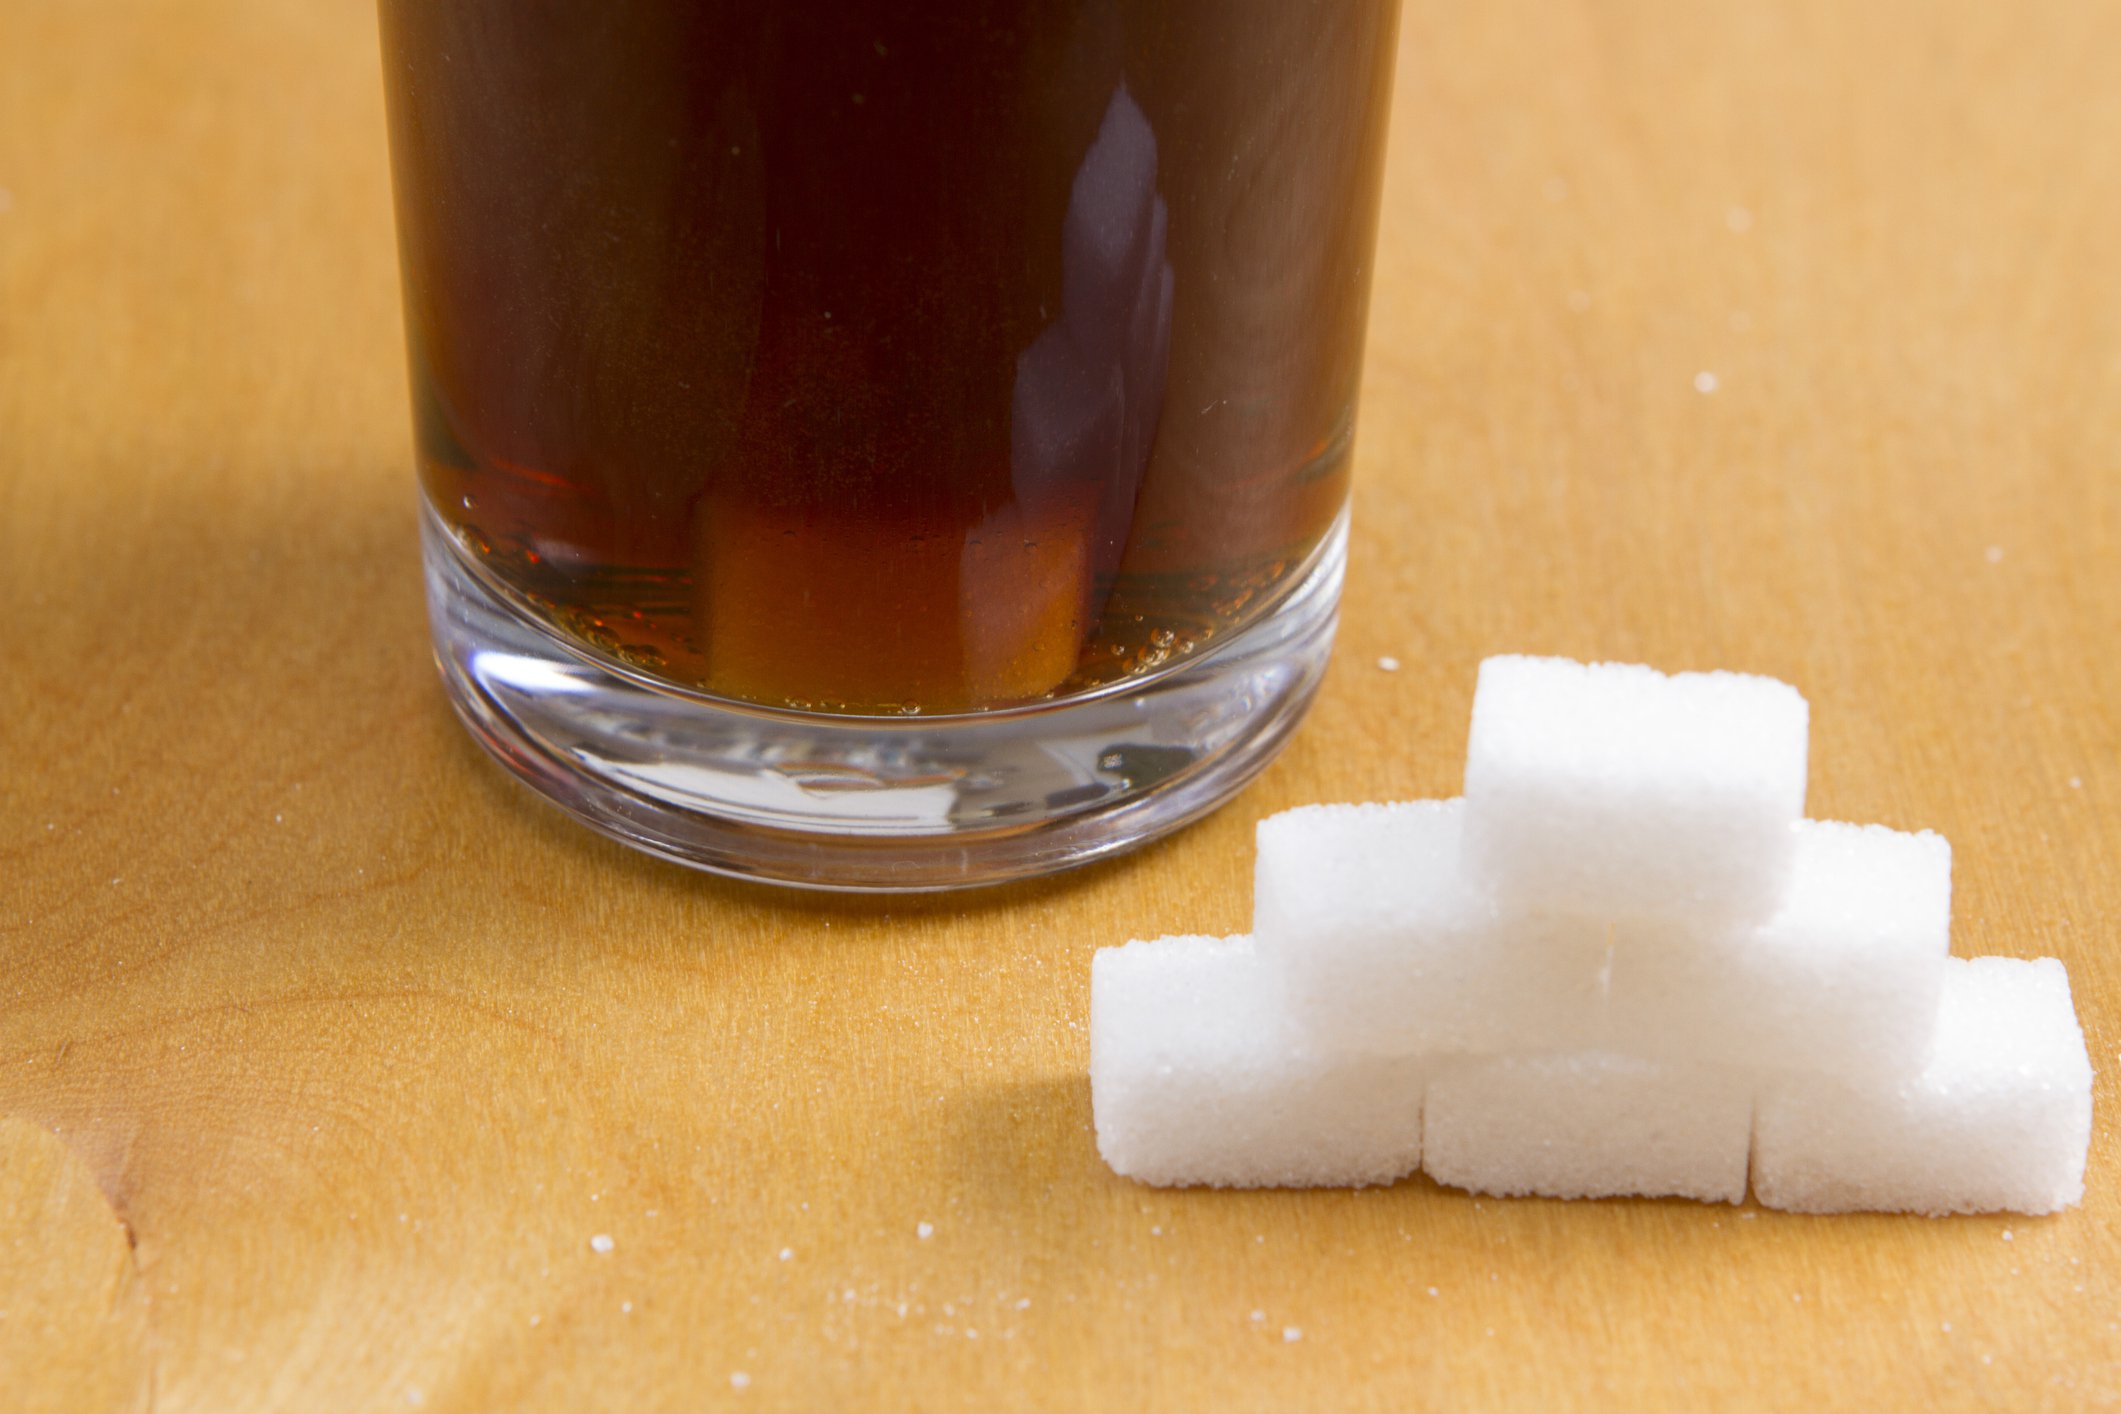 By 10 years old, kids in the UK have already eaten 18 years' worth of sugar